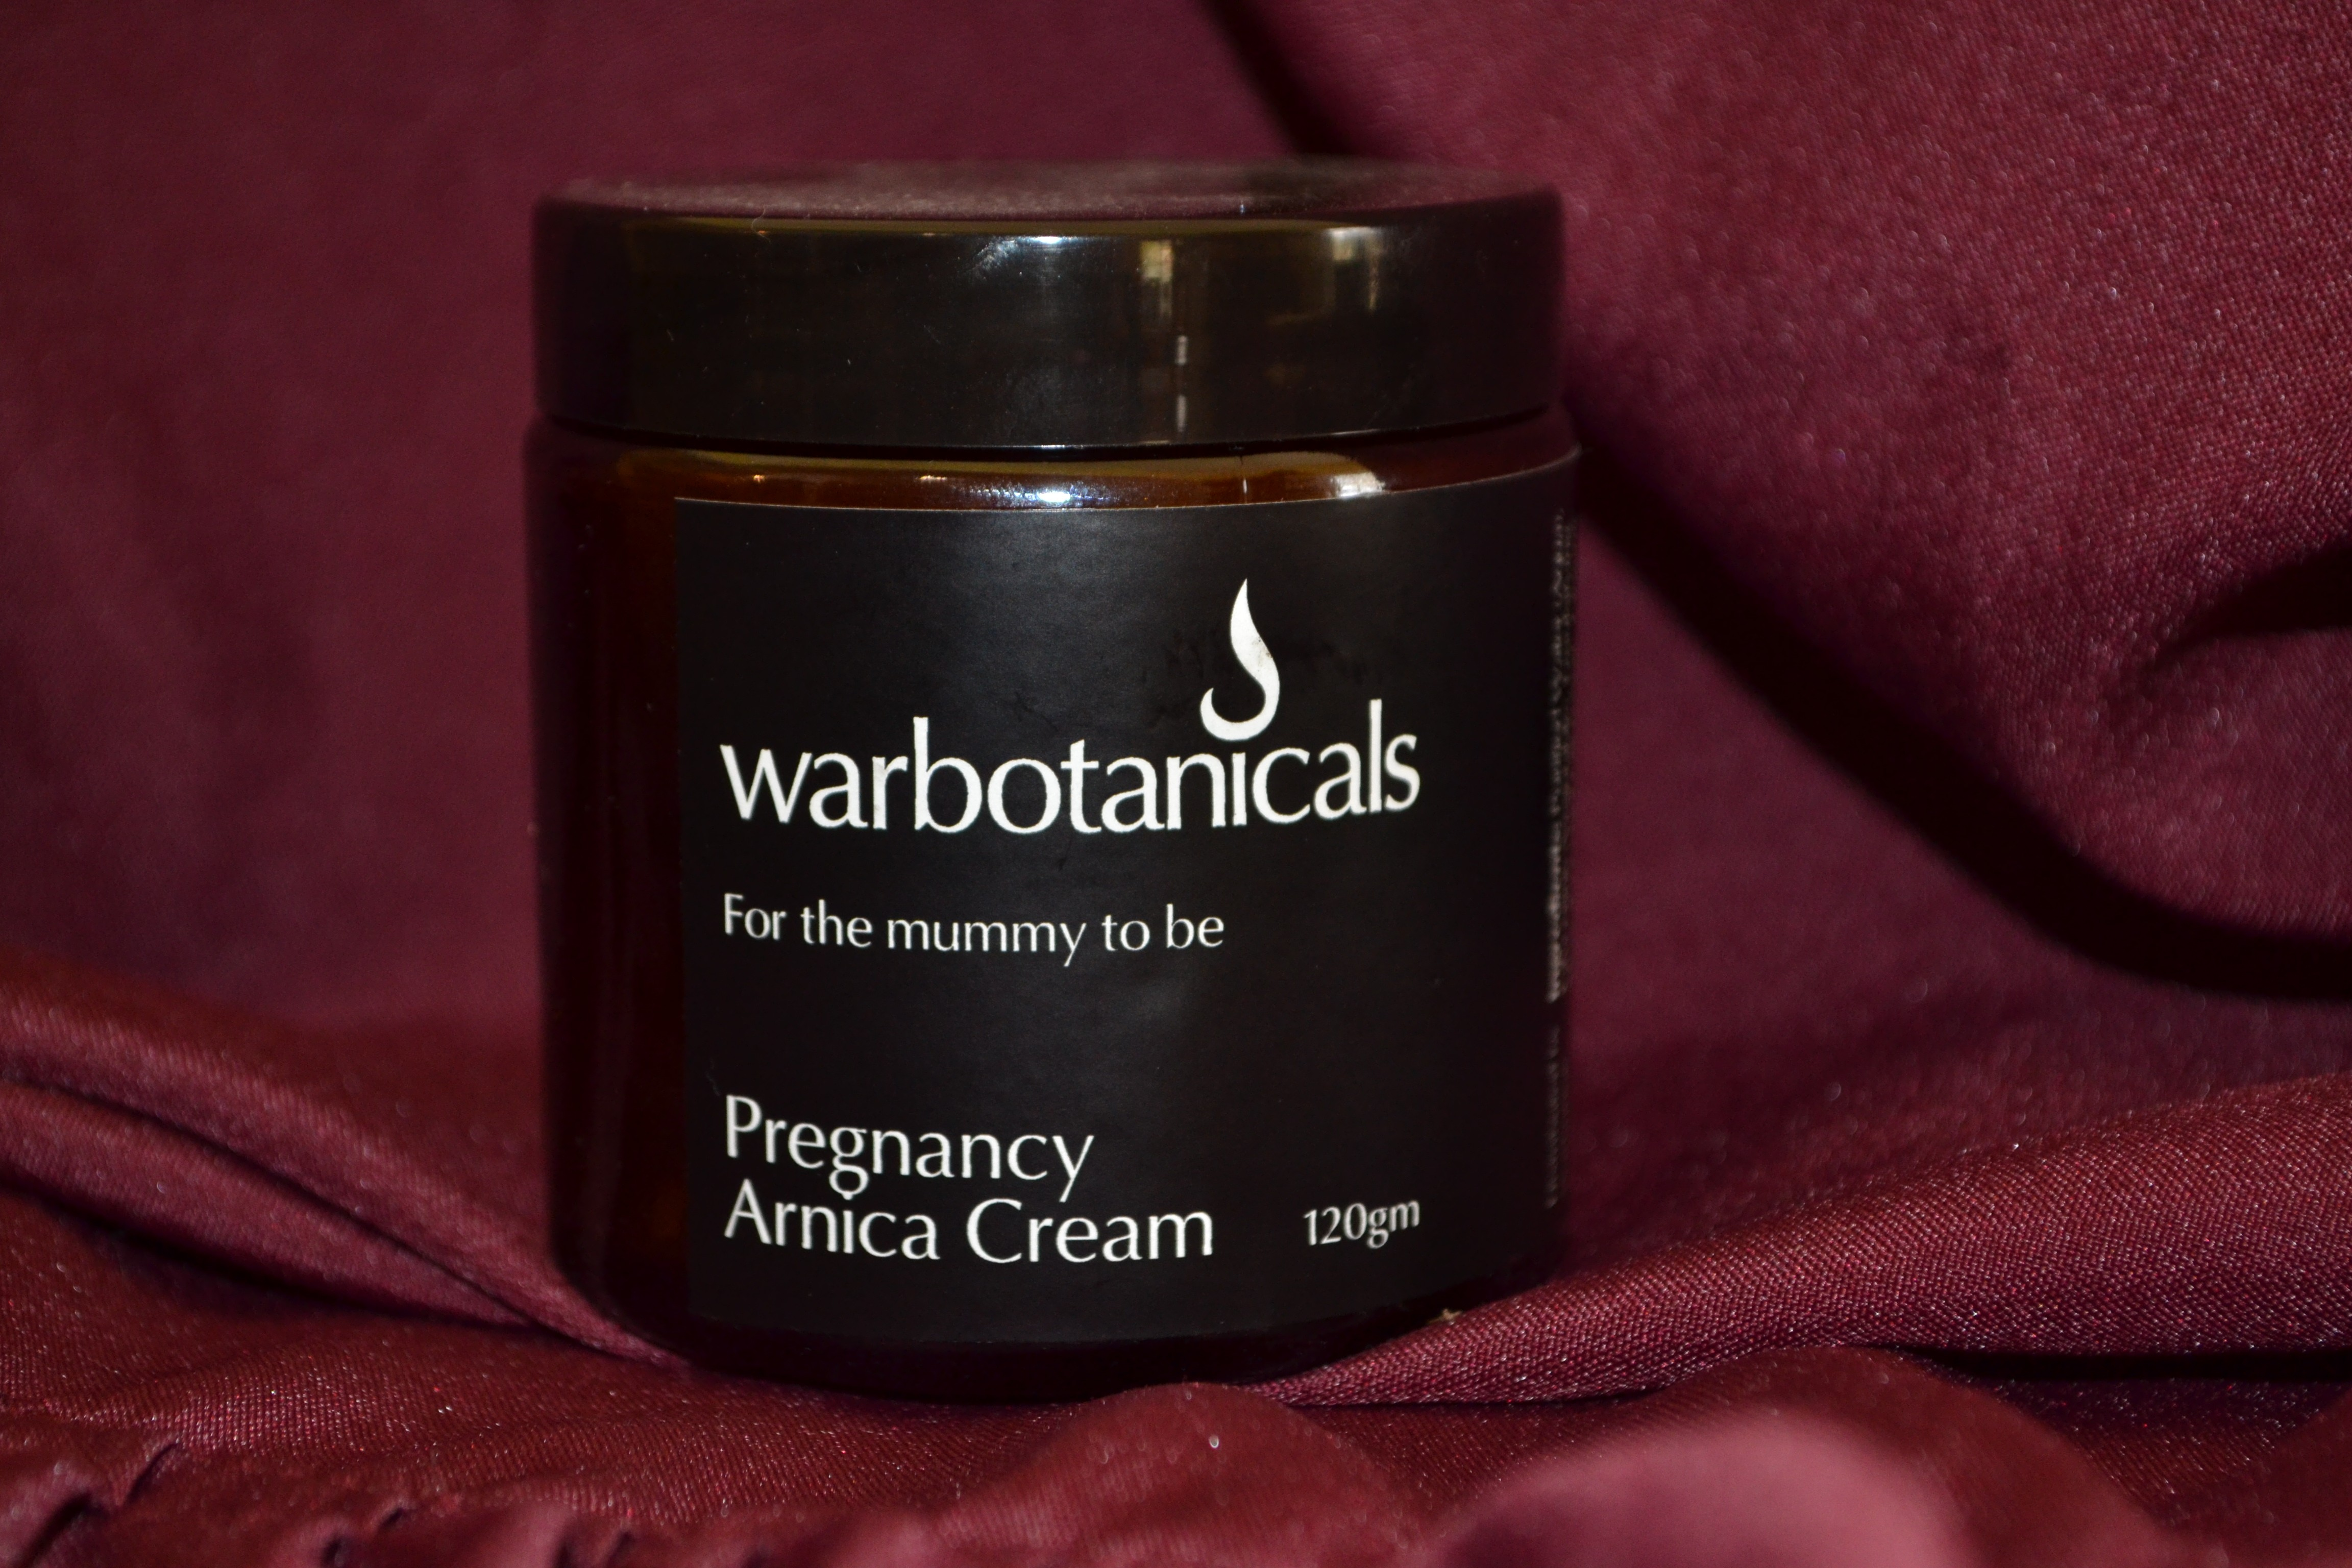 Pregnancy Arnica Cream 120gm